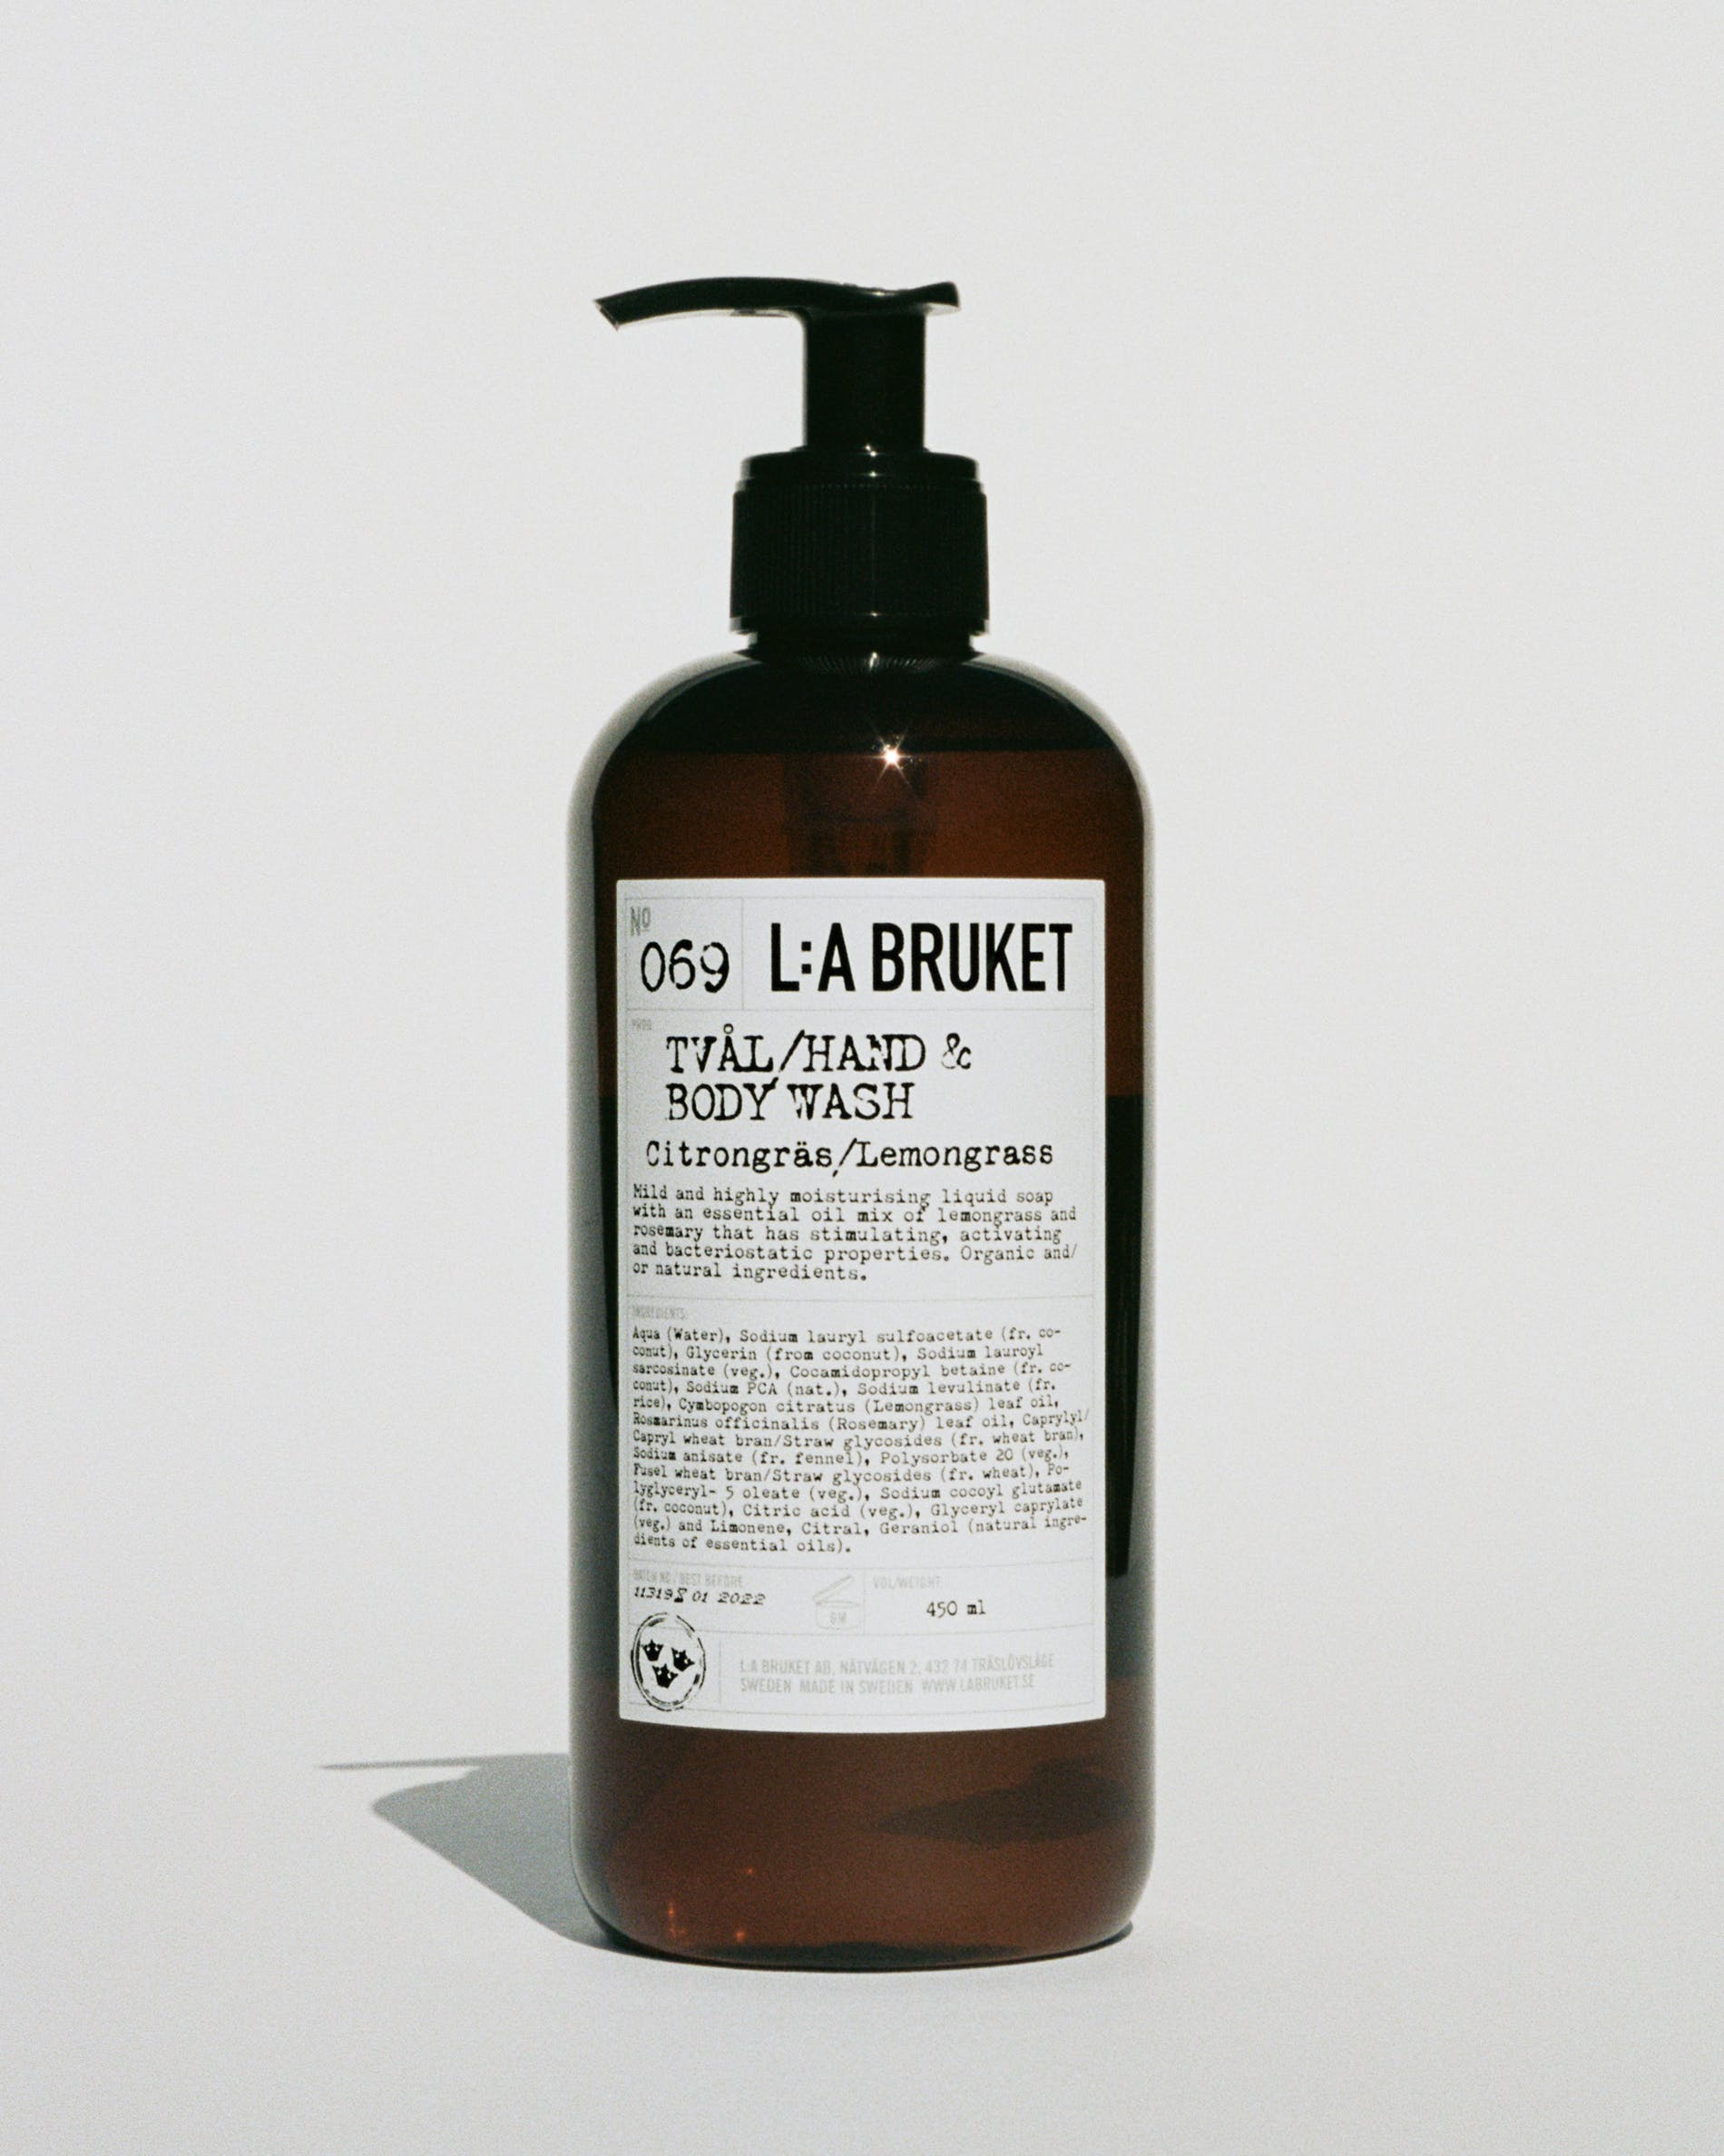 L:A Bruket 069 Hand & Body Wash Citrongræs/Lemongræs, 450ml